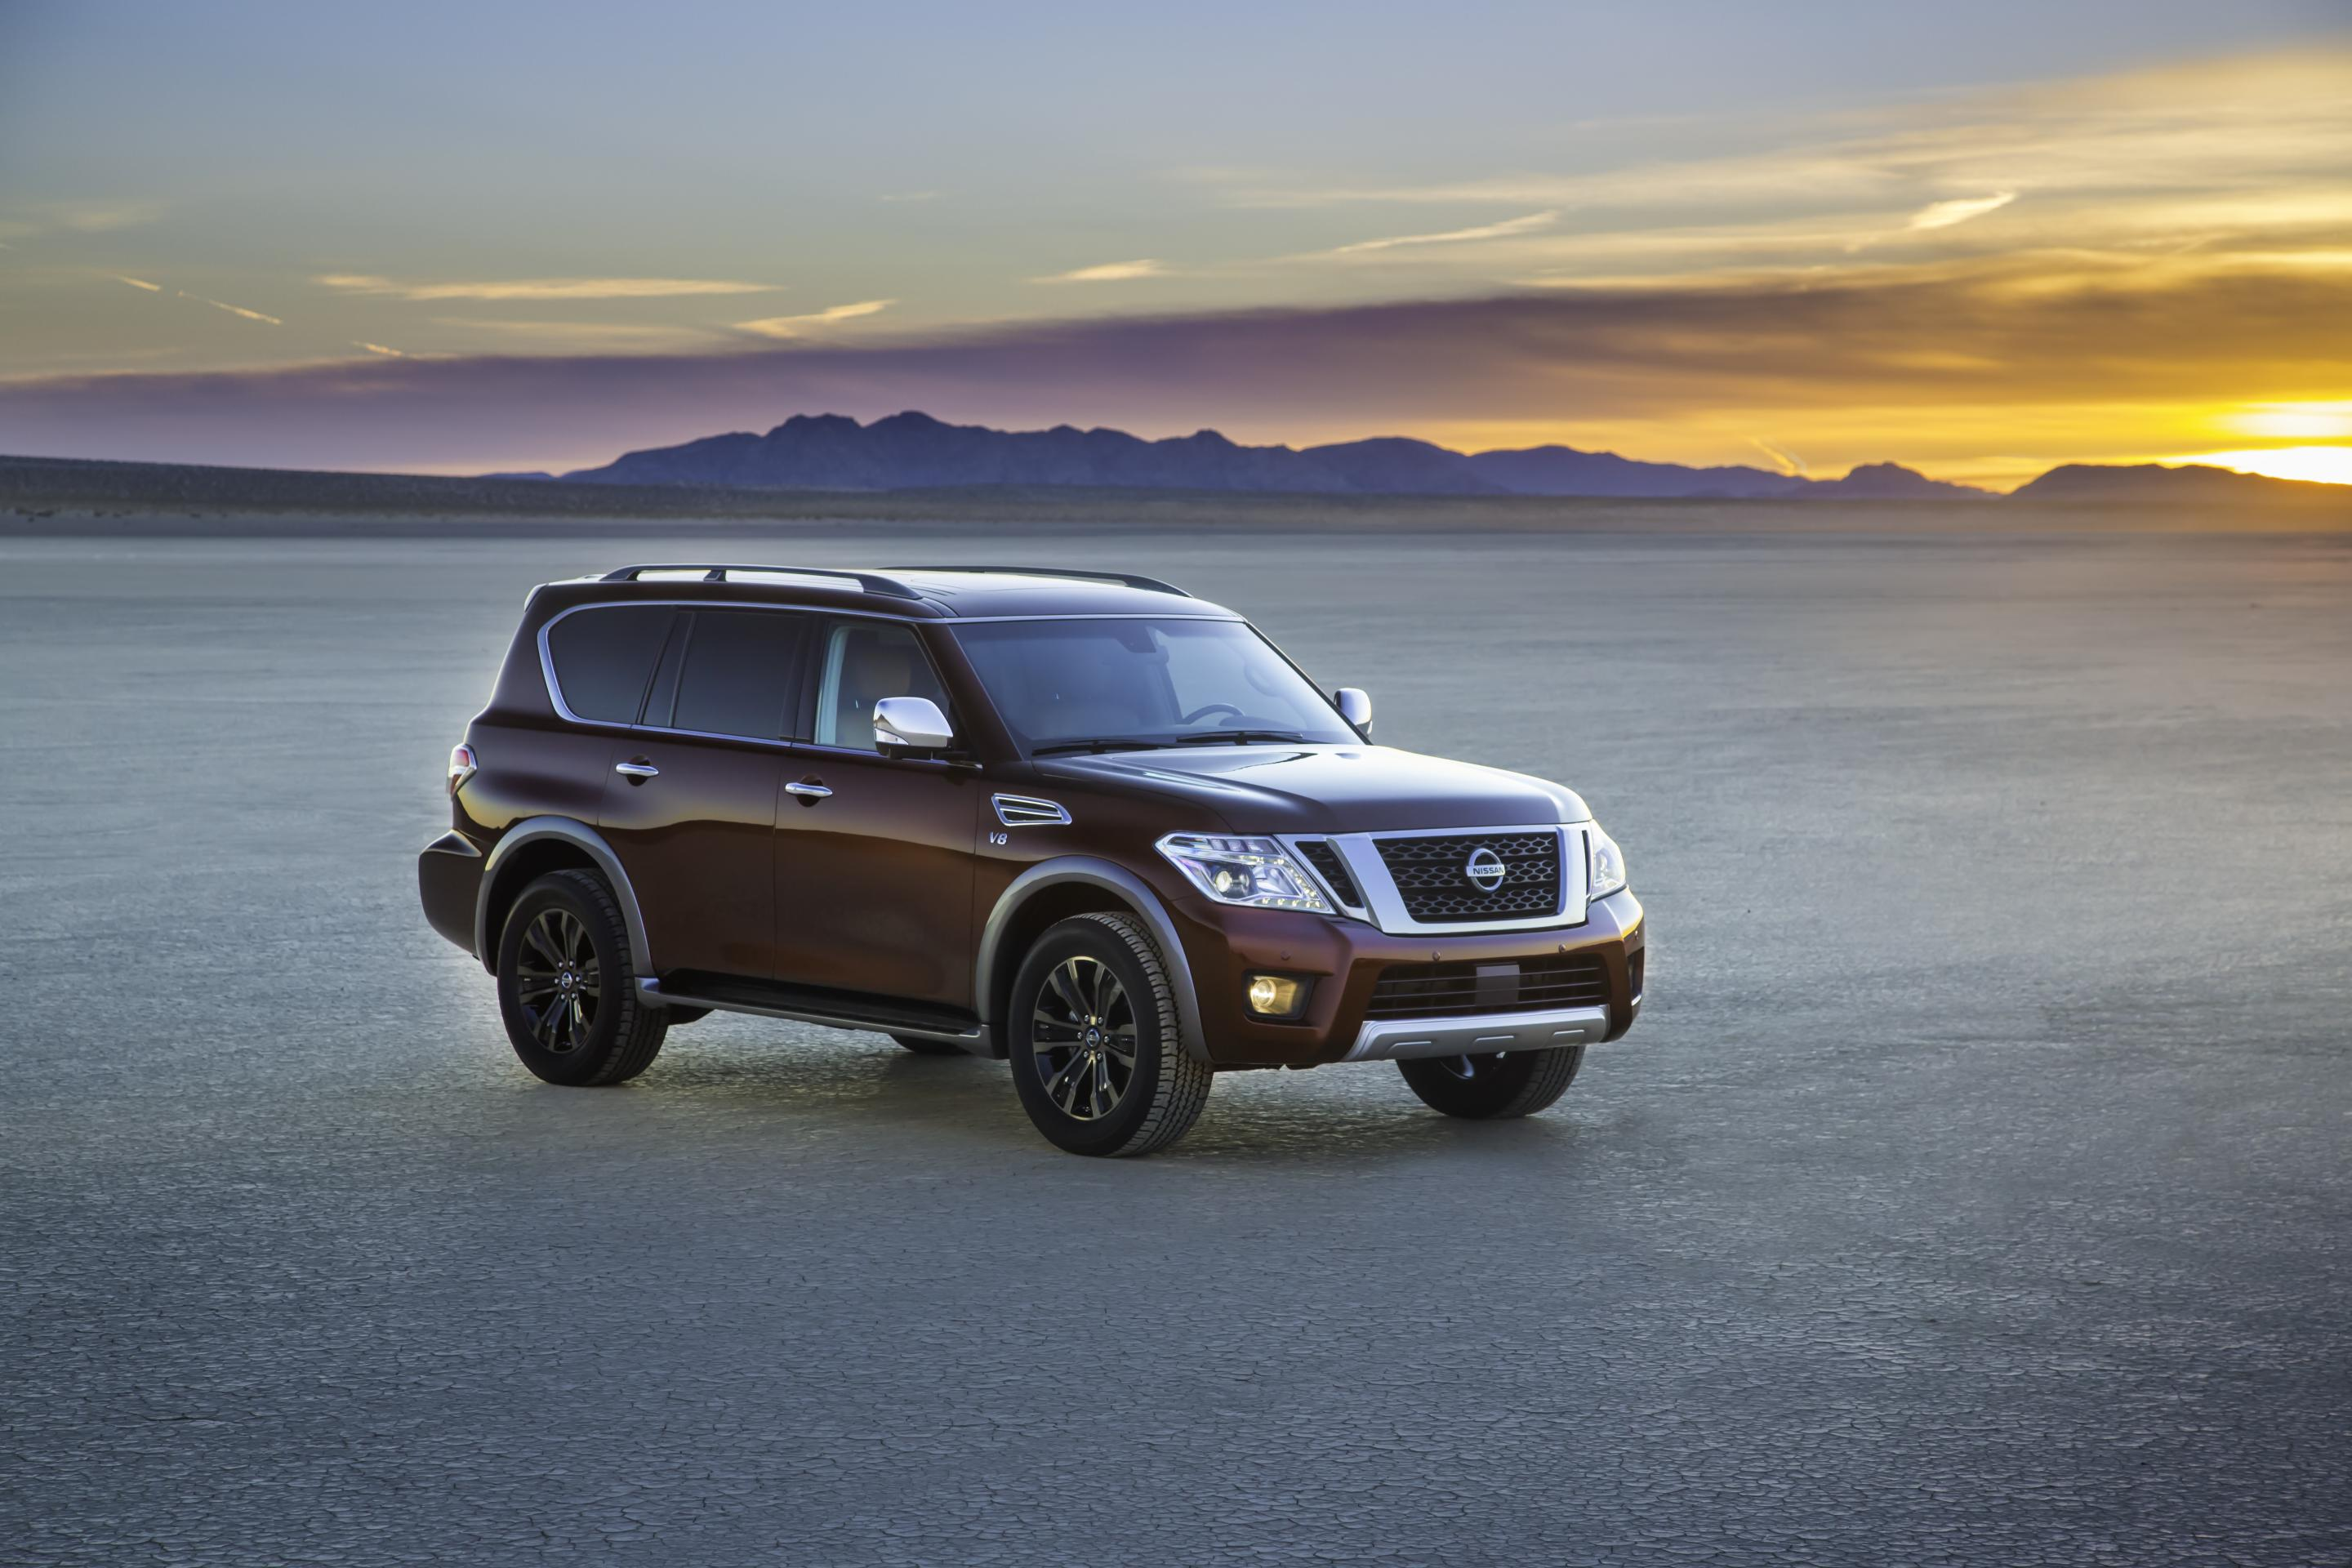 2017 Nissan Armada Is In Fact A Nissan Patrol Y62